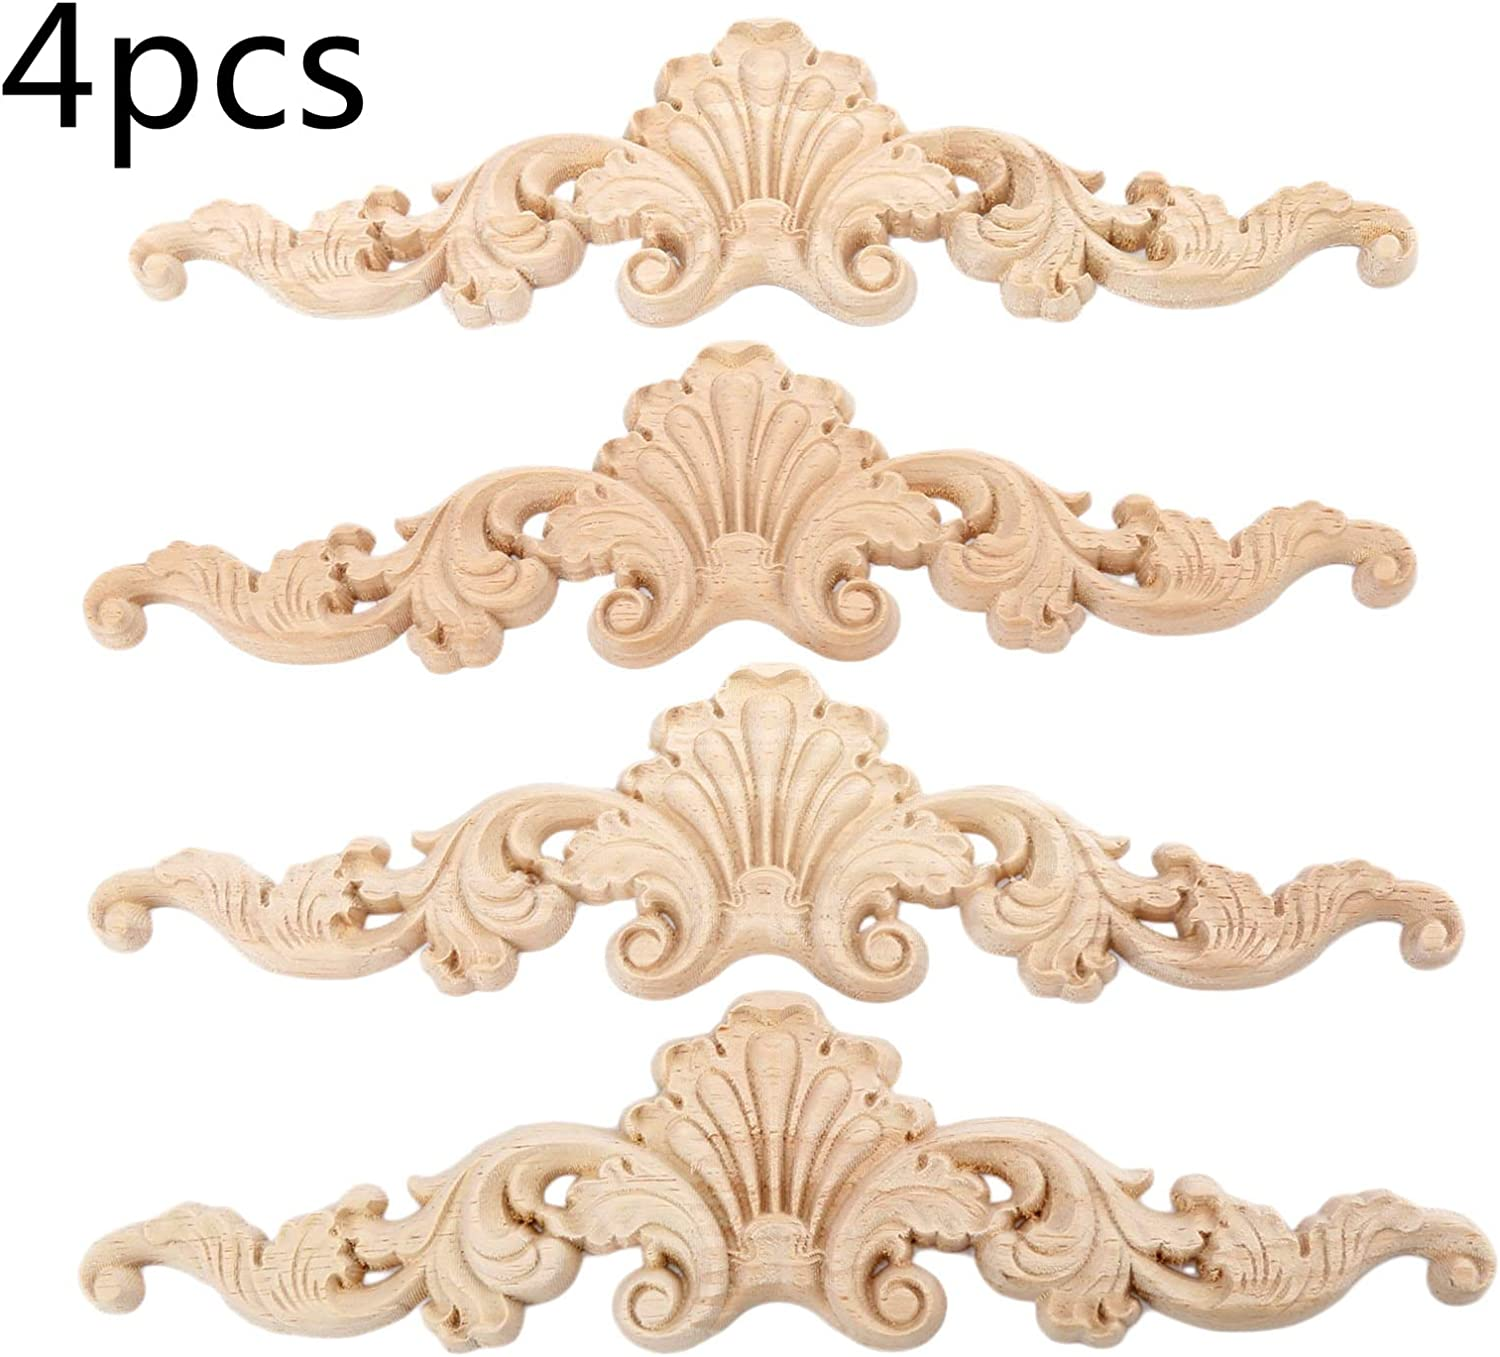 4pcs 20x5cm Wood Carved Long Onlay Applique Unpainted Frame Door Decor European Style Applique